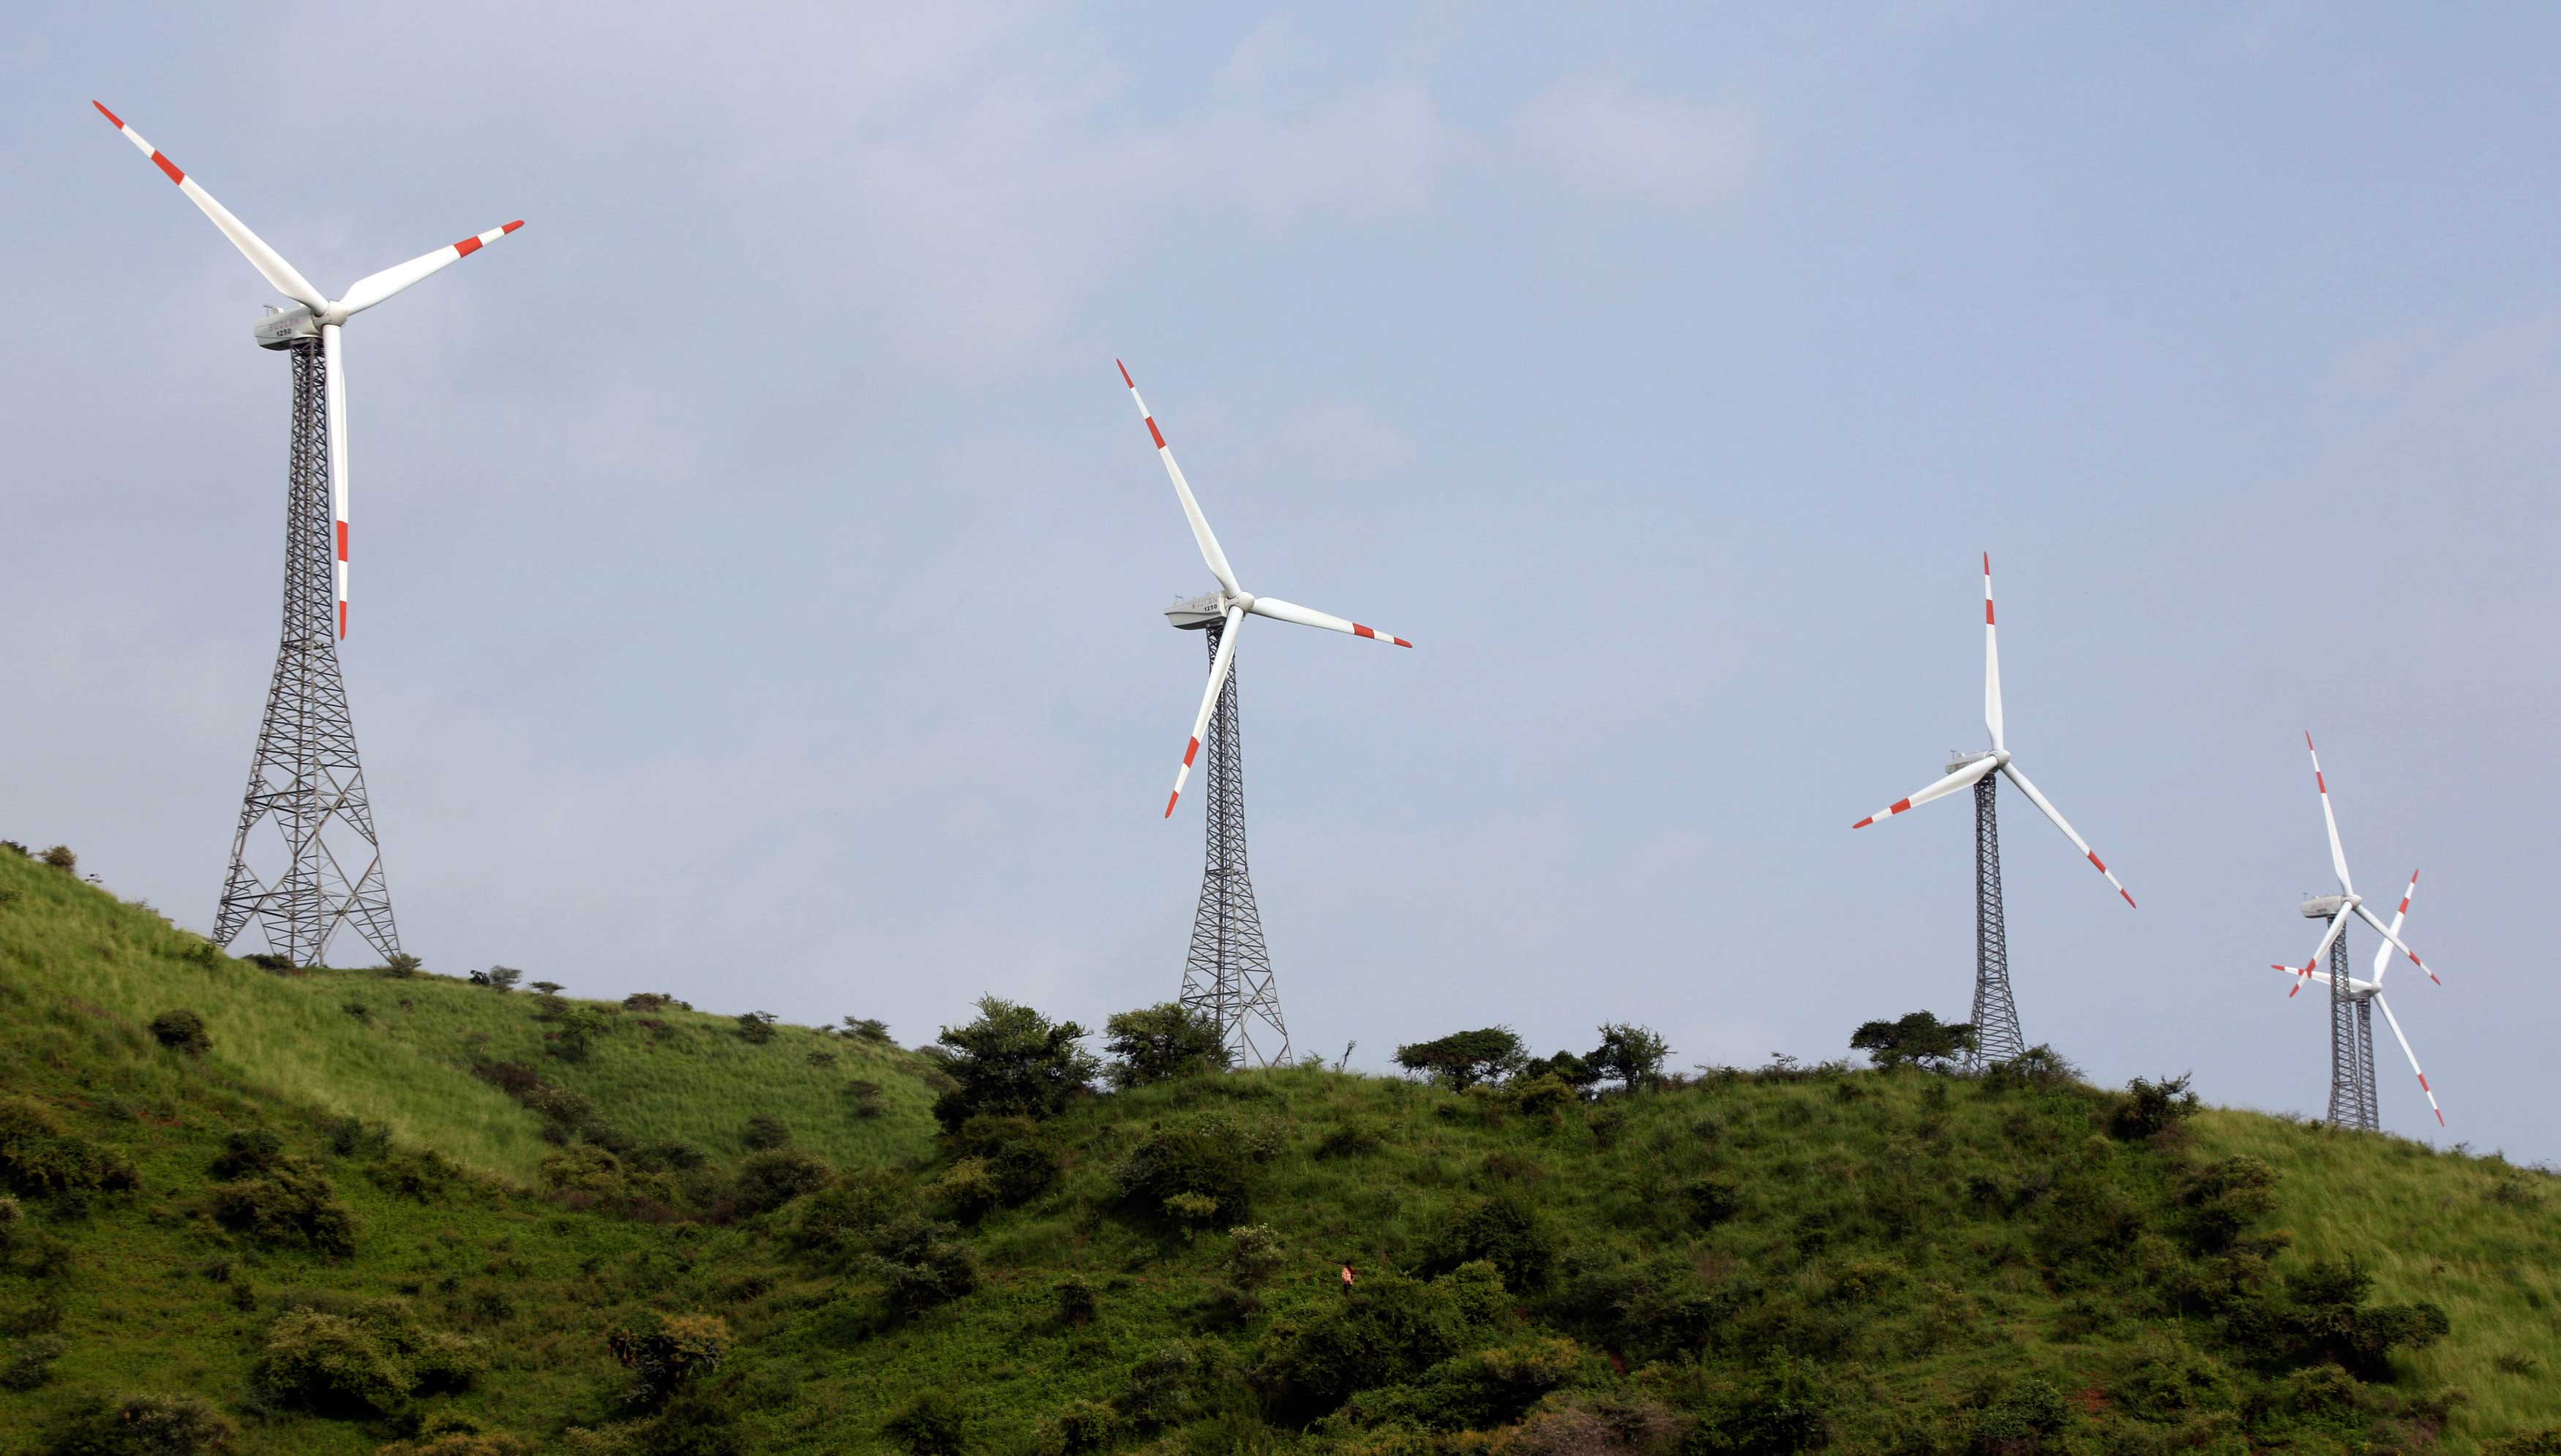 Suzlon seeks shareholders nod to raise up to $7.5B